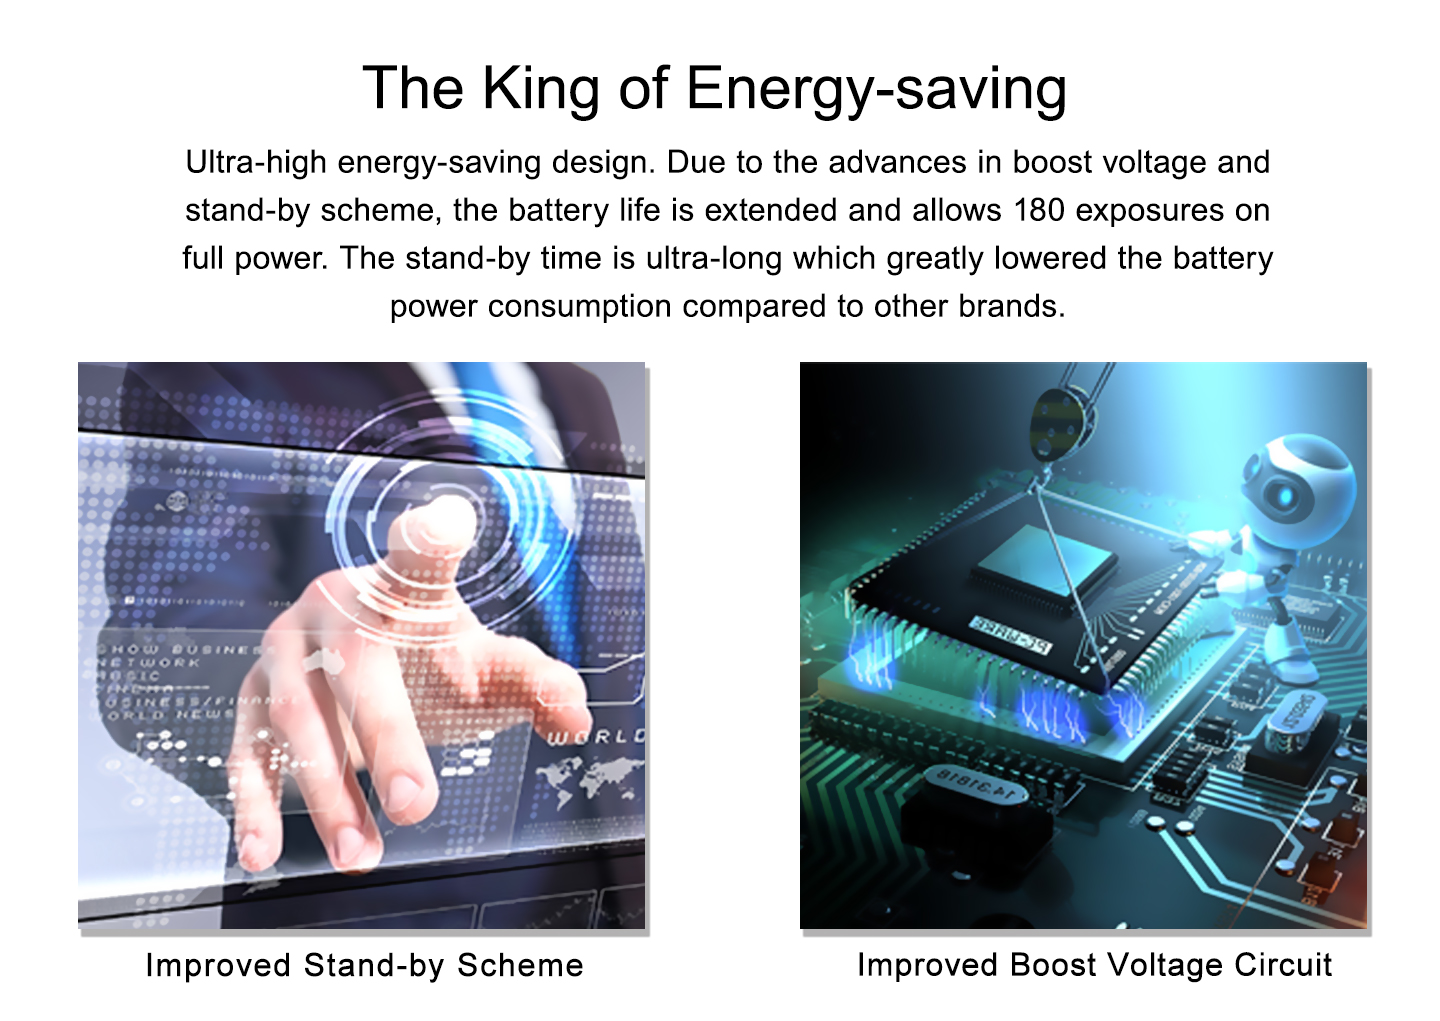 The King of Energy-saving